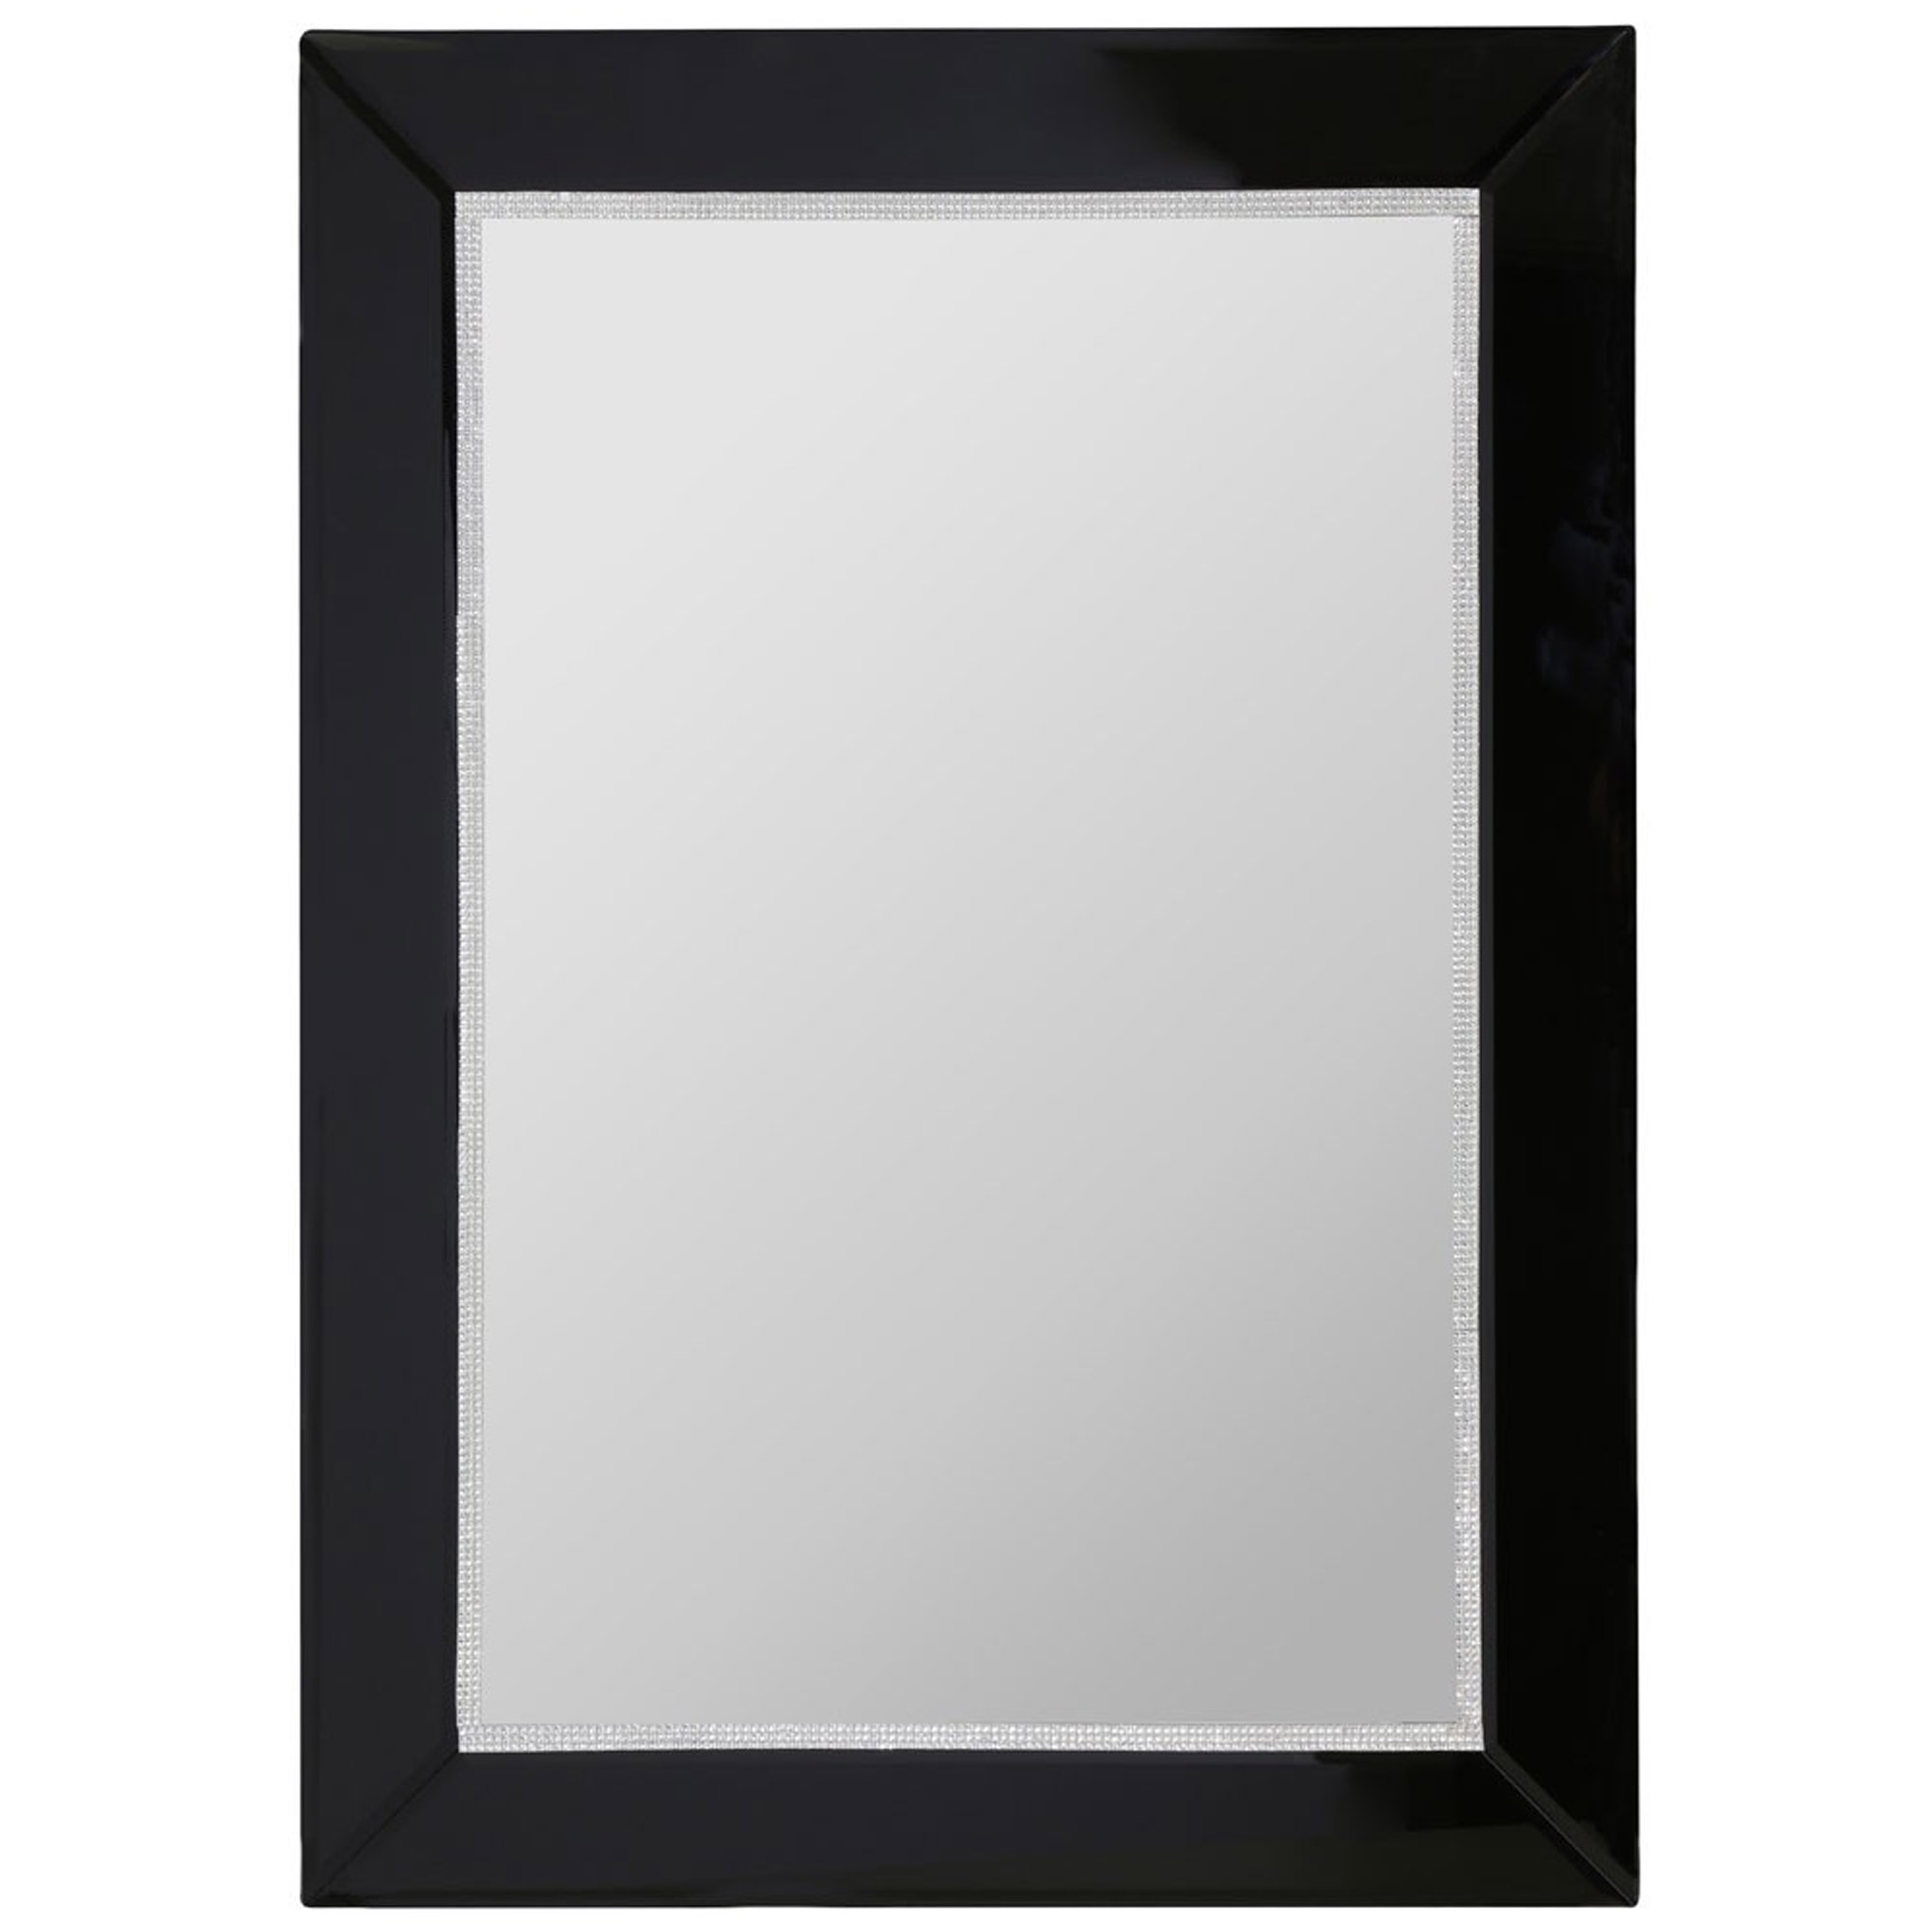 2019 Black Wall Mirror With Regard To Modern Black Wall Mirrors (View 1 of 20)